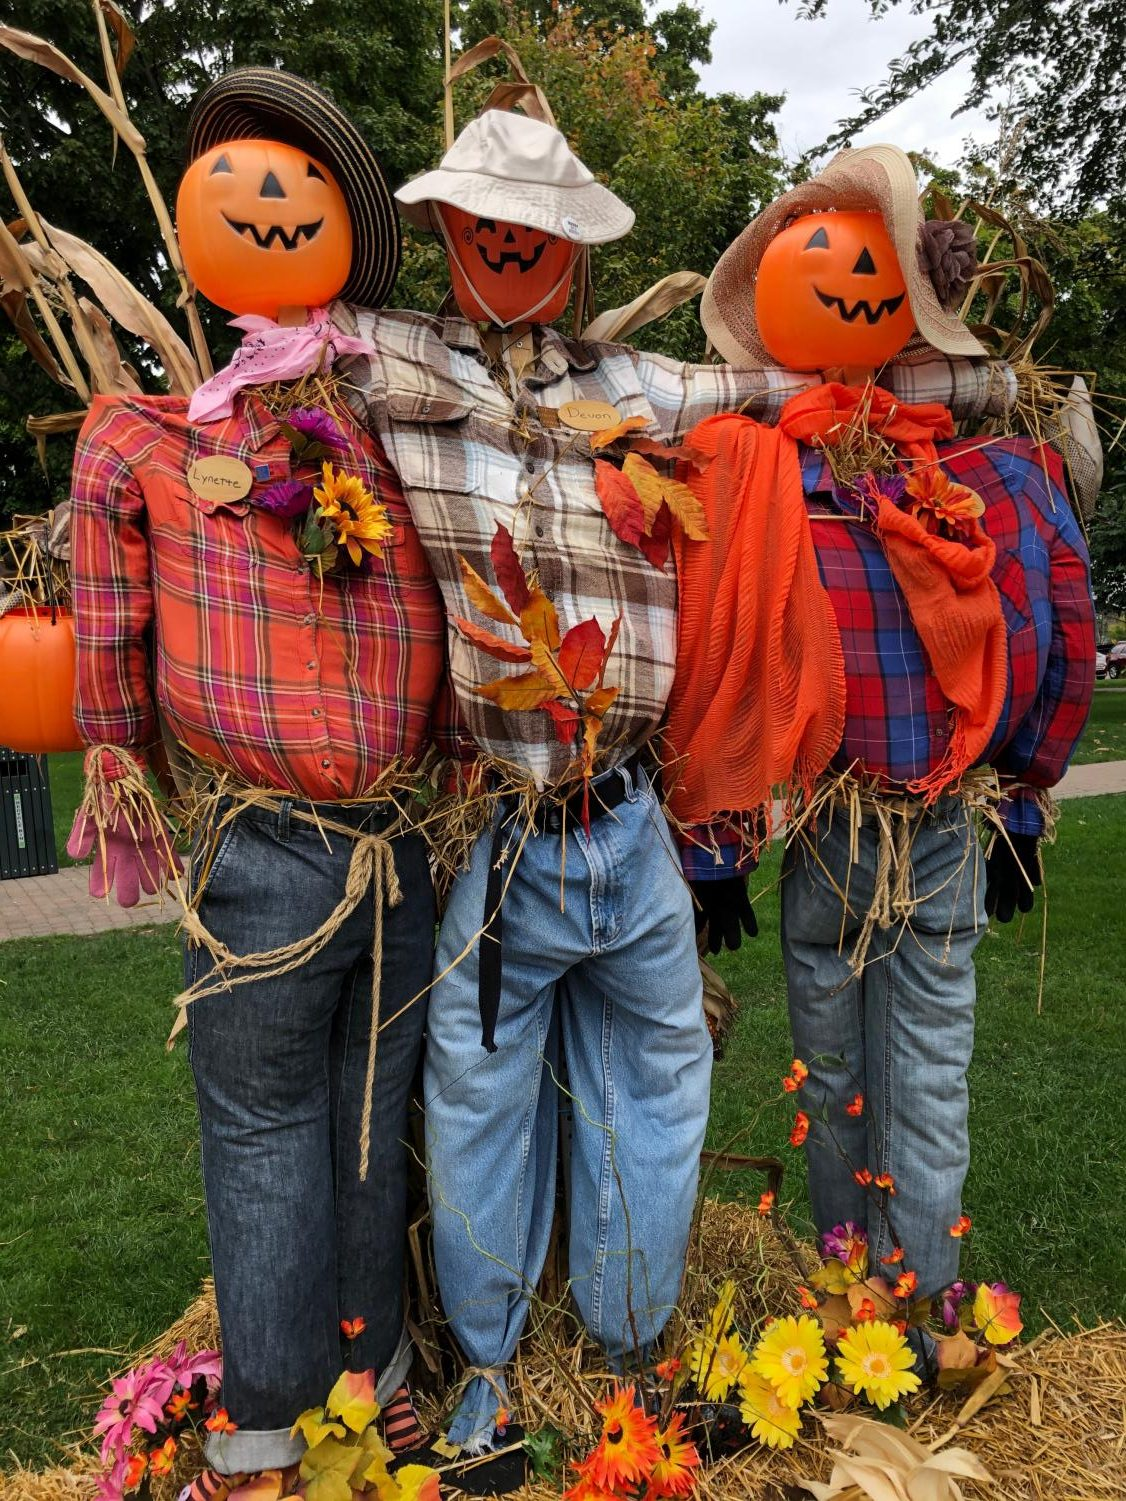 Scarecrows in DTP.